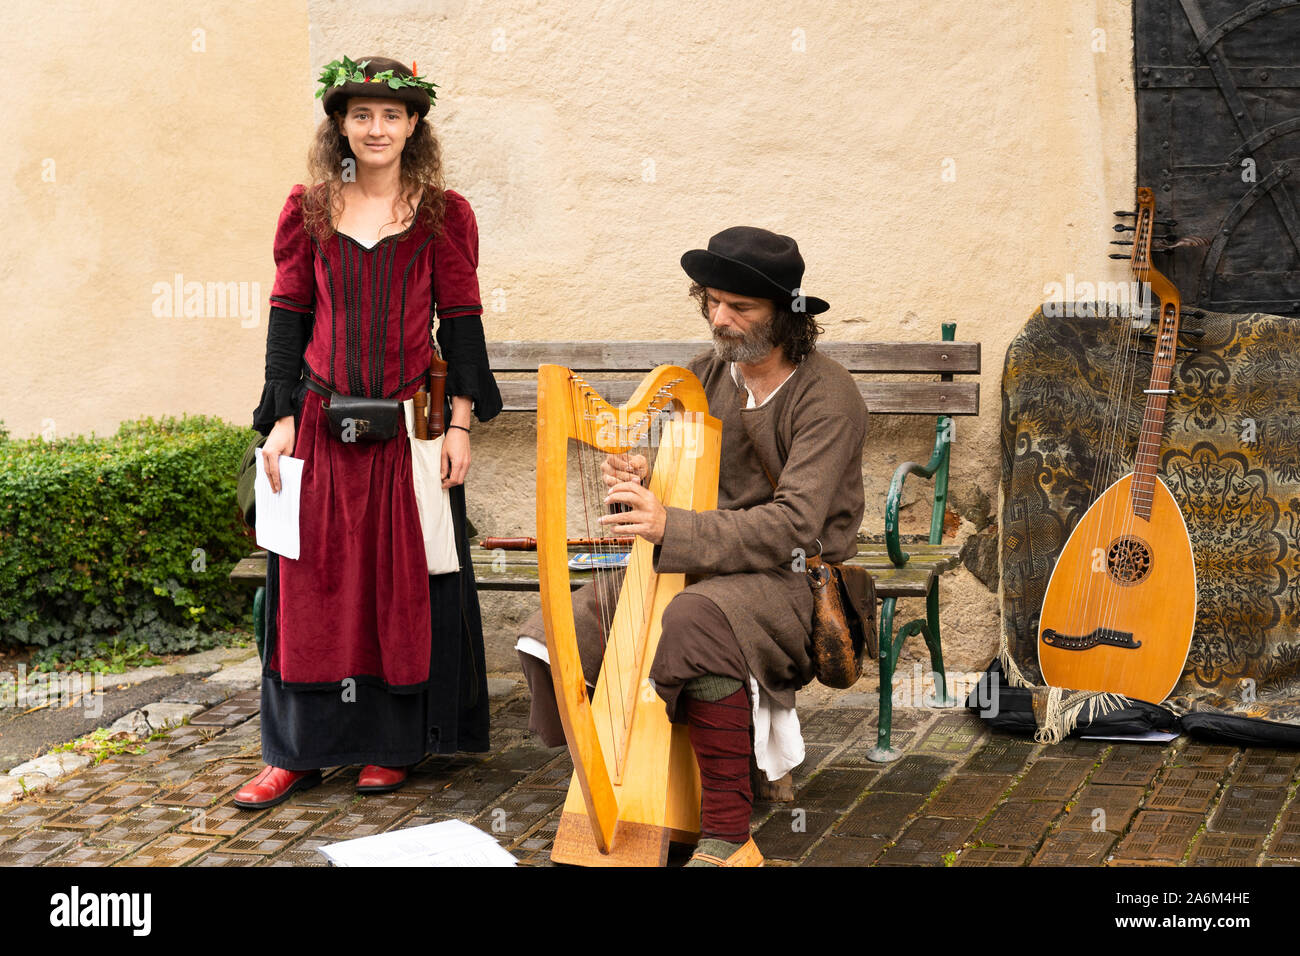 a-man-and-woman-in-medieval-clothes-play